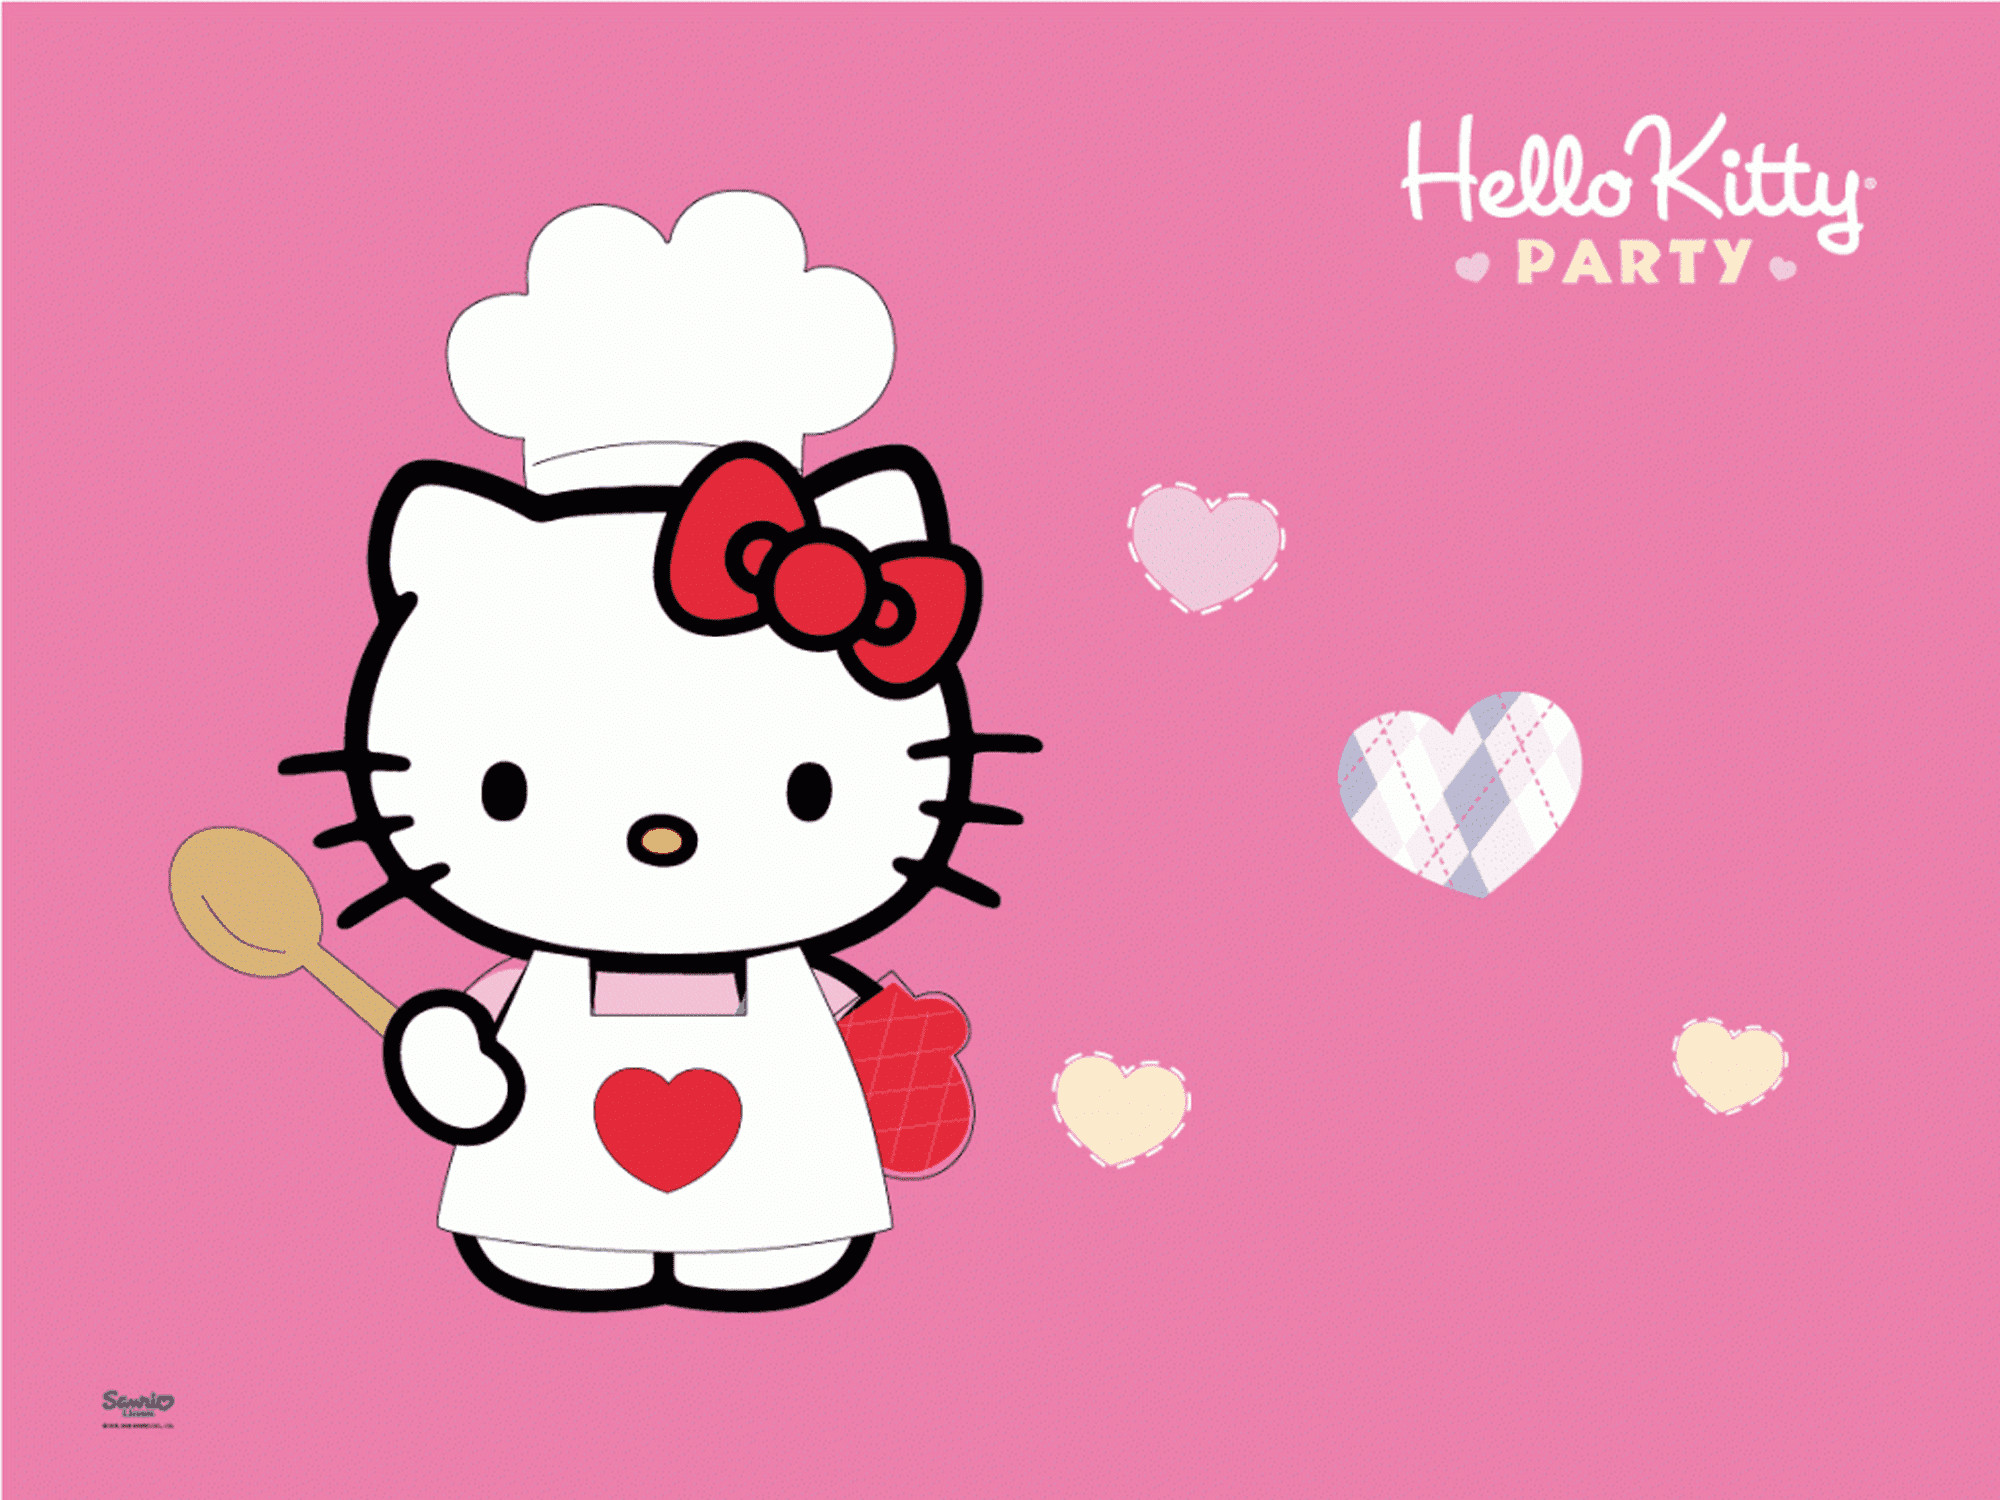 2000x1500 Screenshot of a Hello Kitty cooking party wallpaper